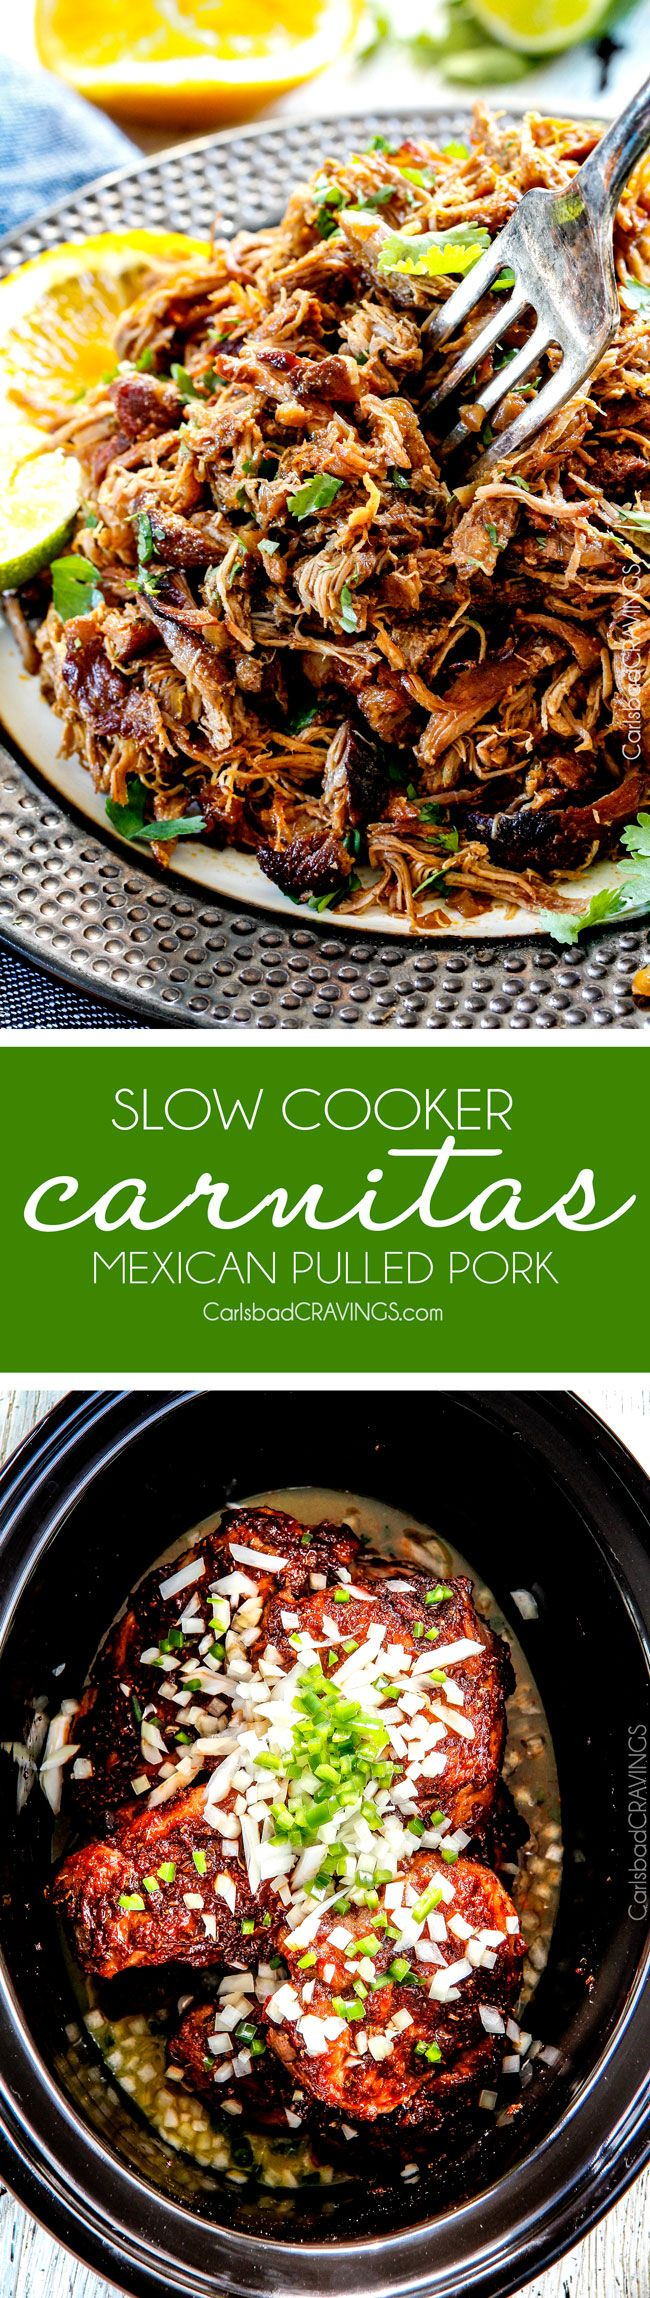 these are the BEST Pork Carnitas (Slow Cooker Mexican Pulled Pork) I have ever tried! Super juicy, easy and so much more flavorful than other versions I've tried and the crispy burnt ends are the best! Great for large crowds and for tacos, burritos, or nachos! #mexicanfood